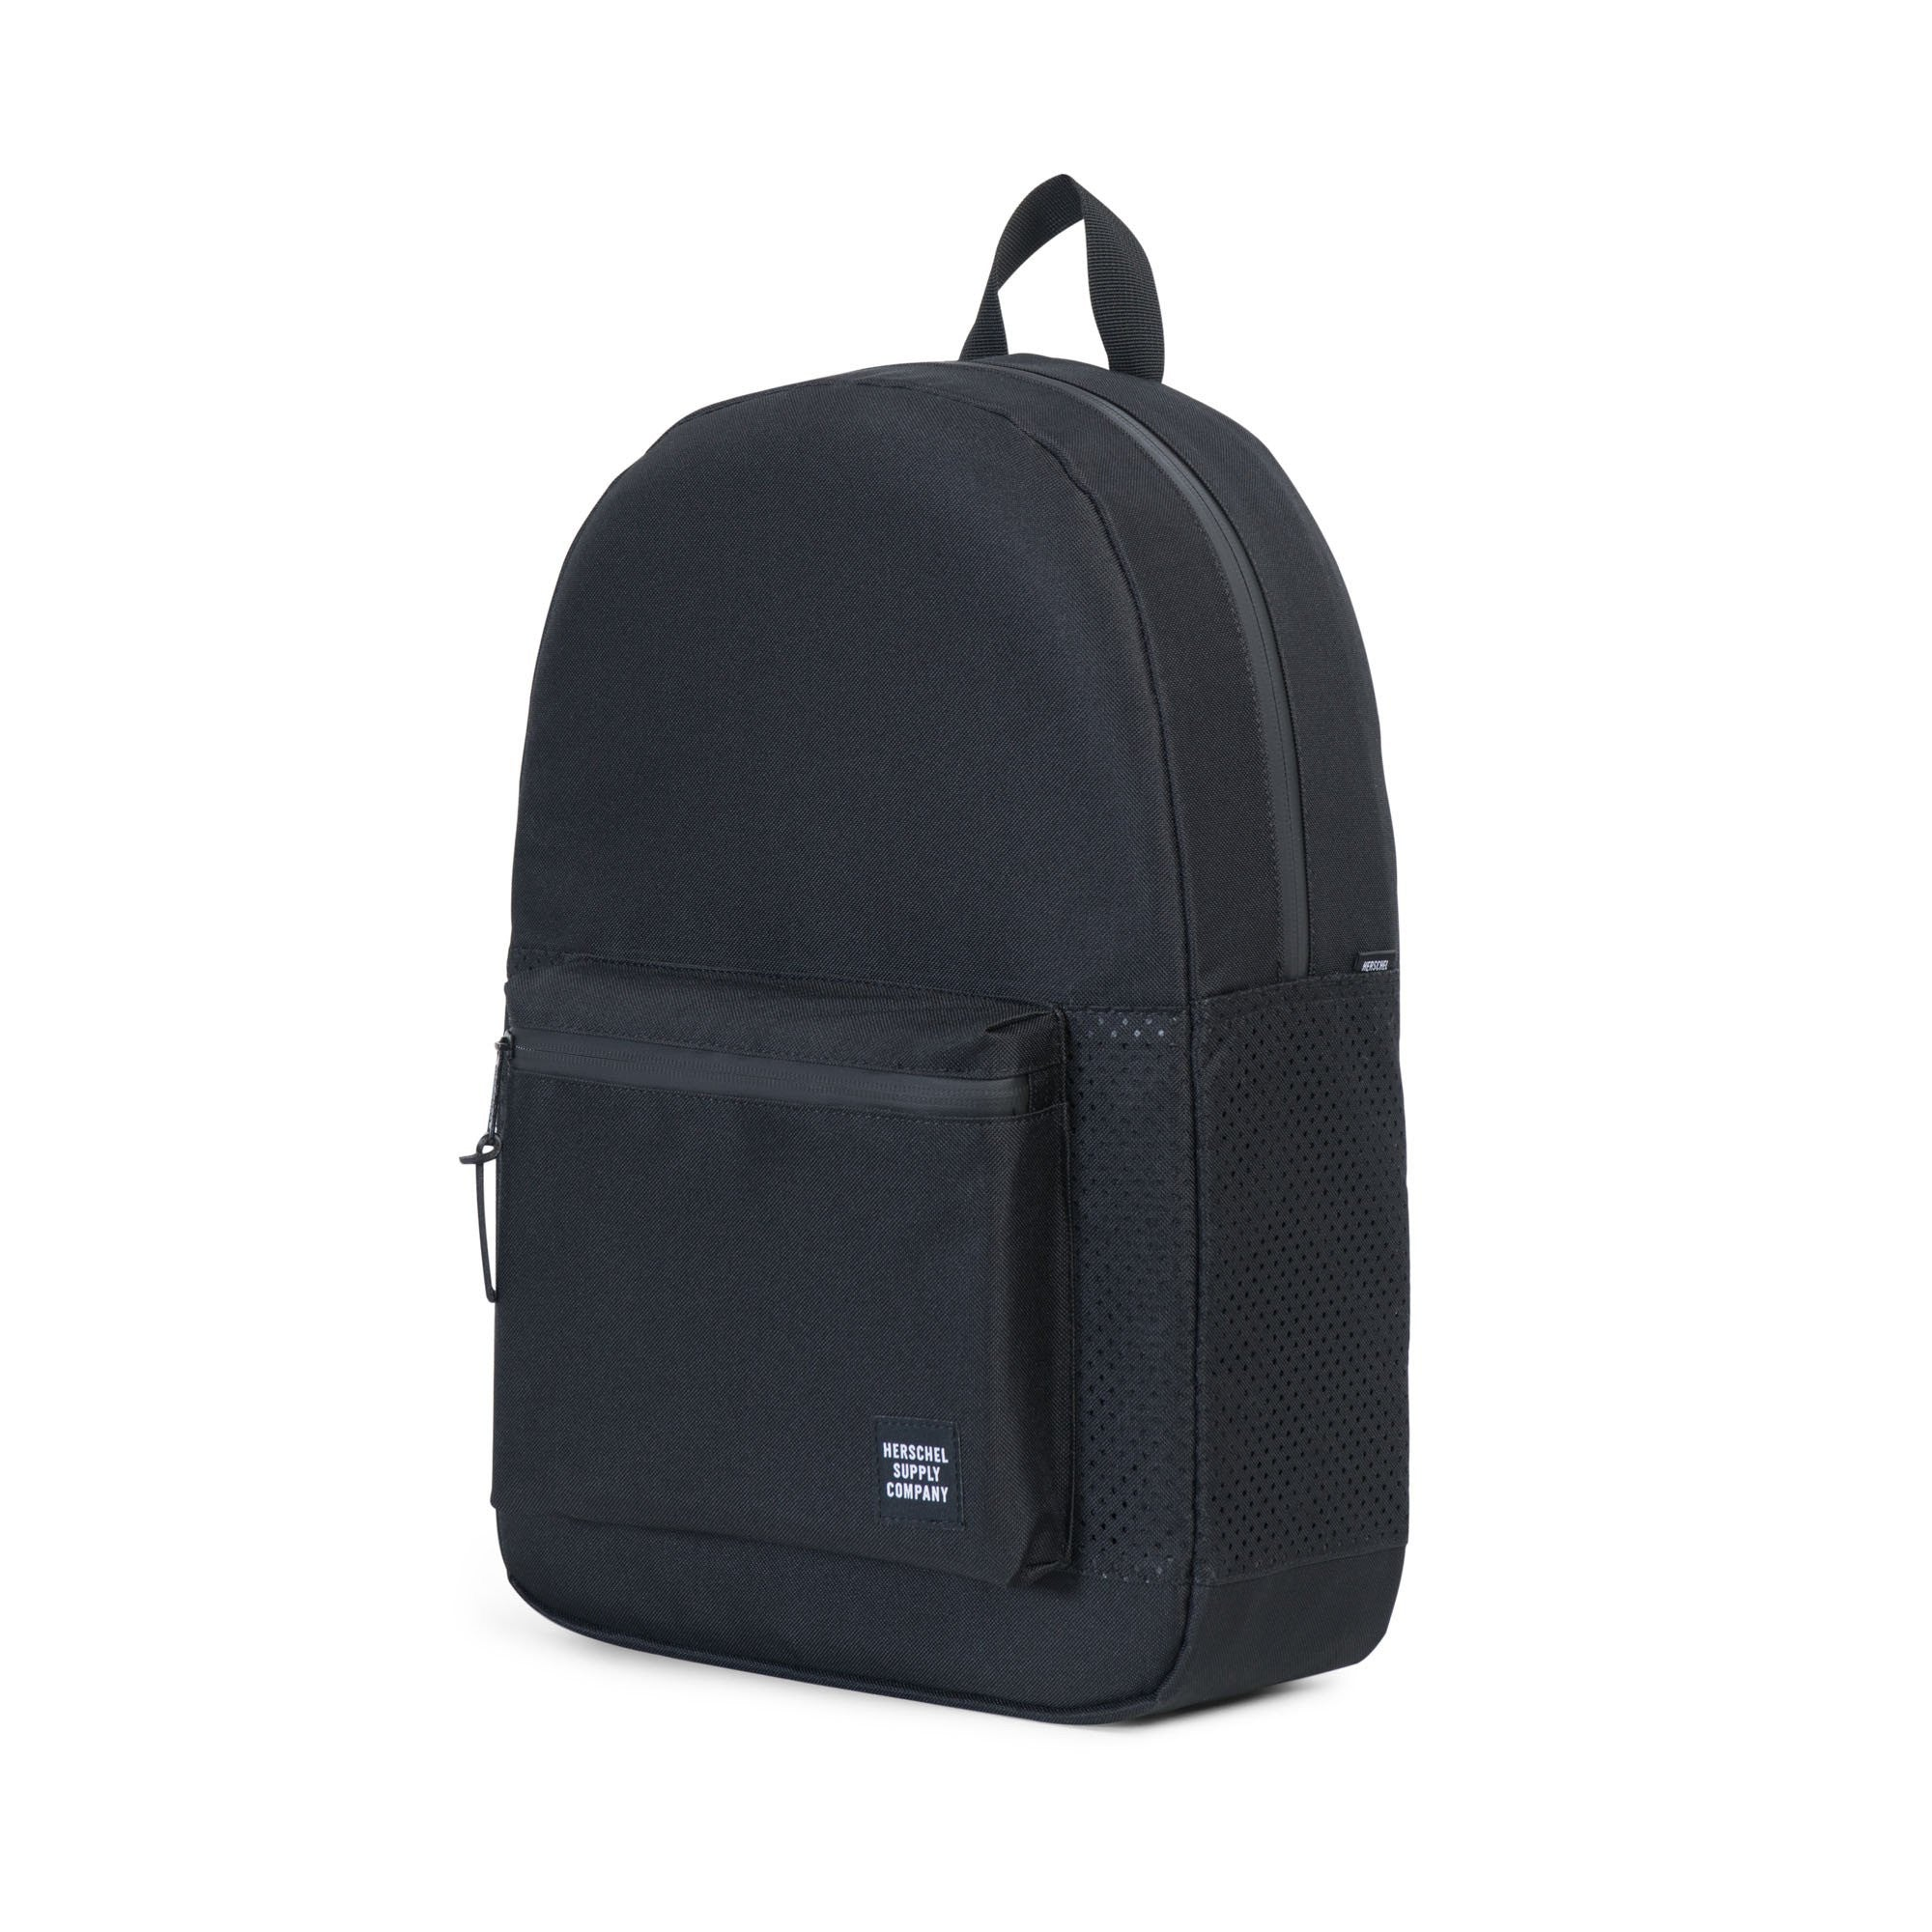 Herschel Supply Co. - Settlement Backpack, Perforated Black/Black - The Giant Peach - 3